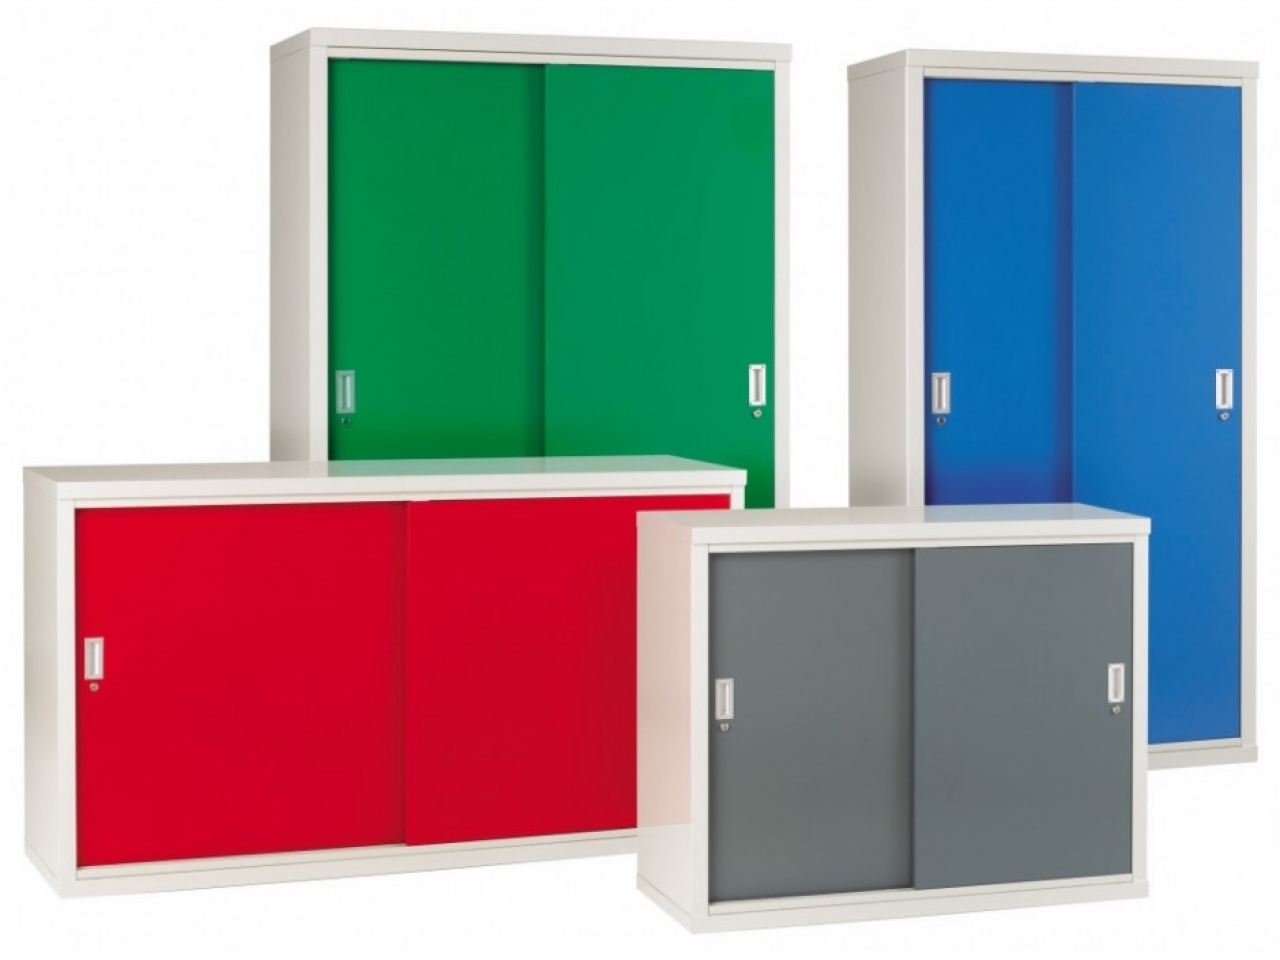 Bathroom Storage Cabinets With Sliding Doors1280 X 960